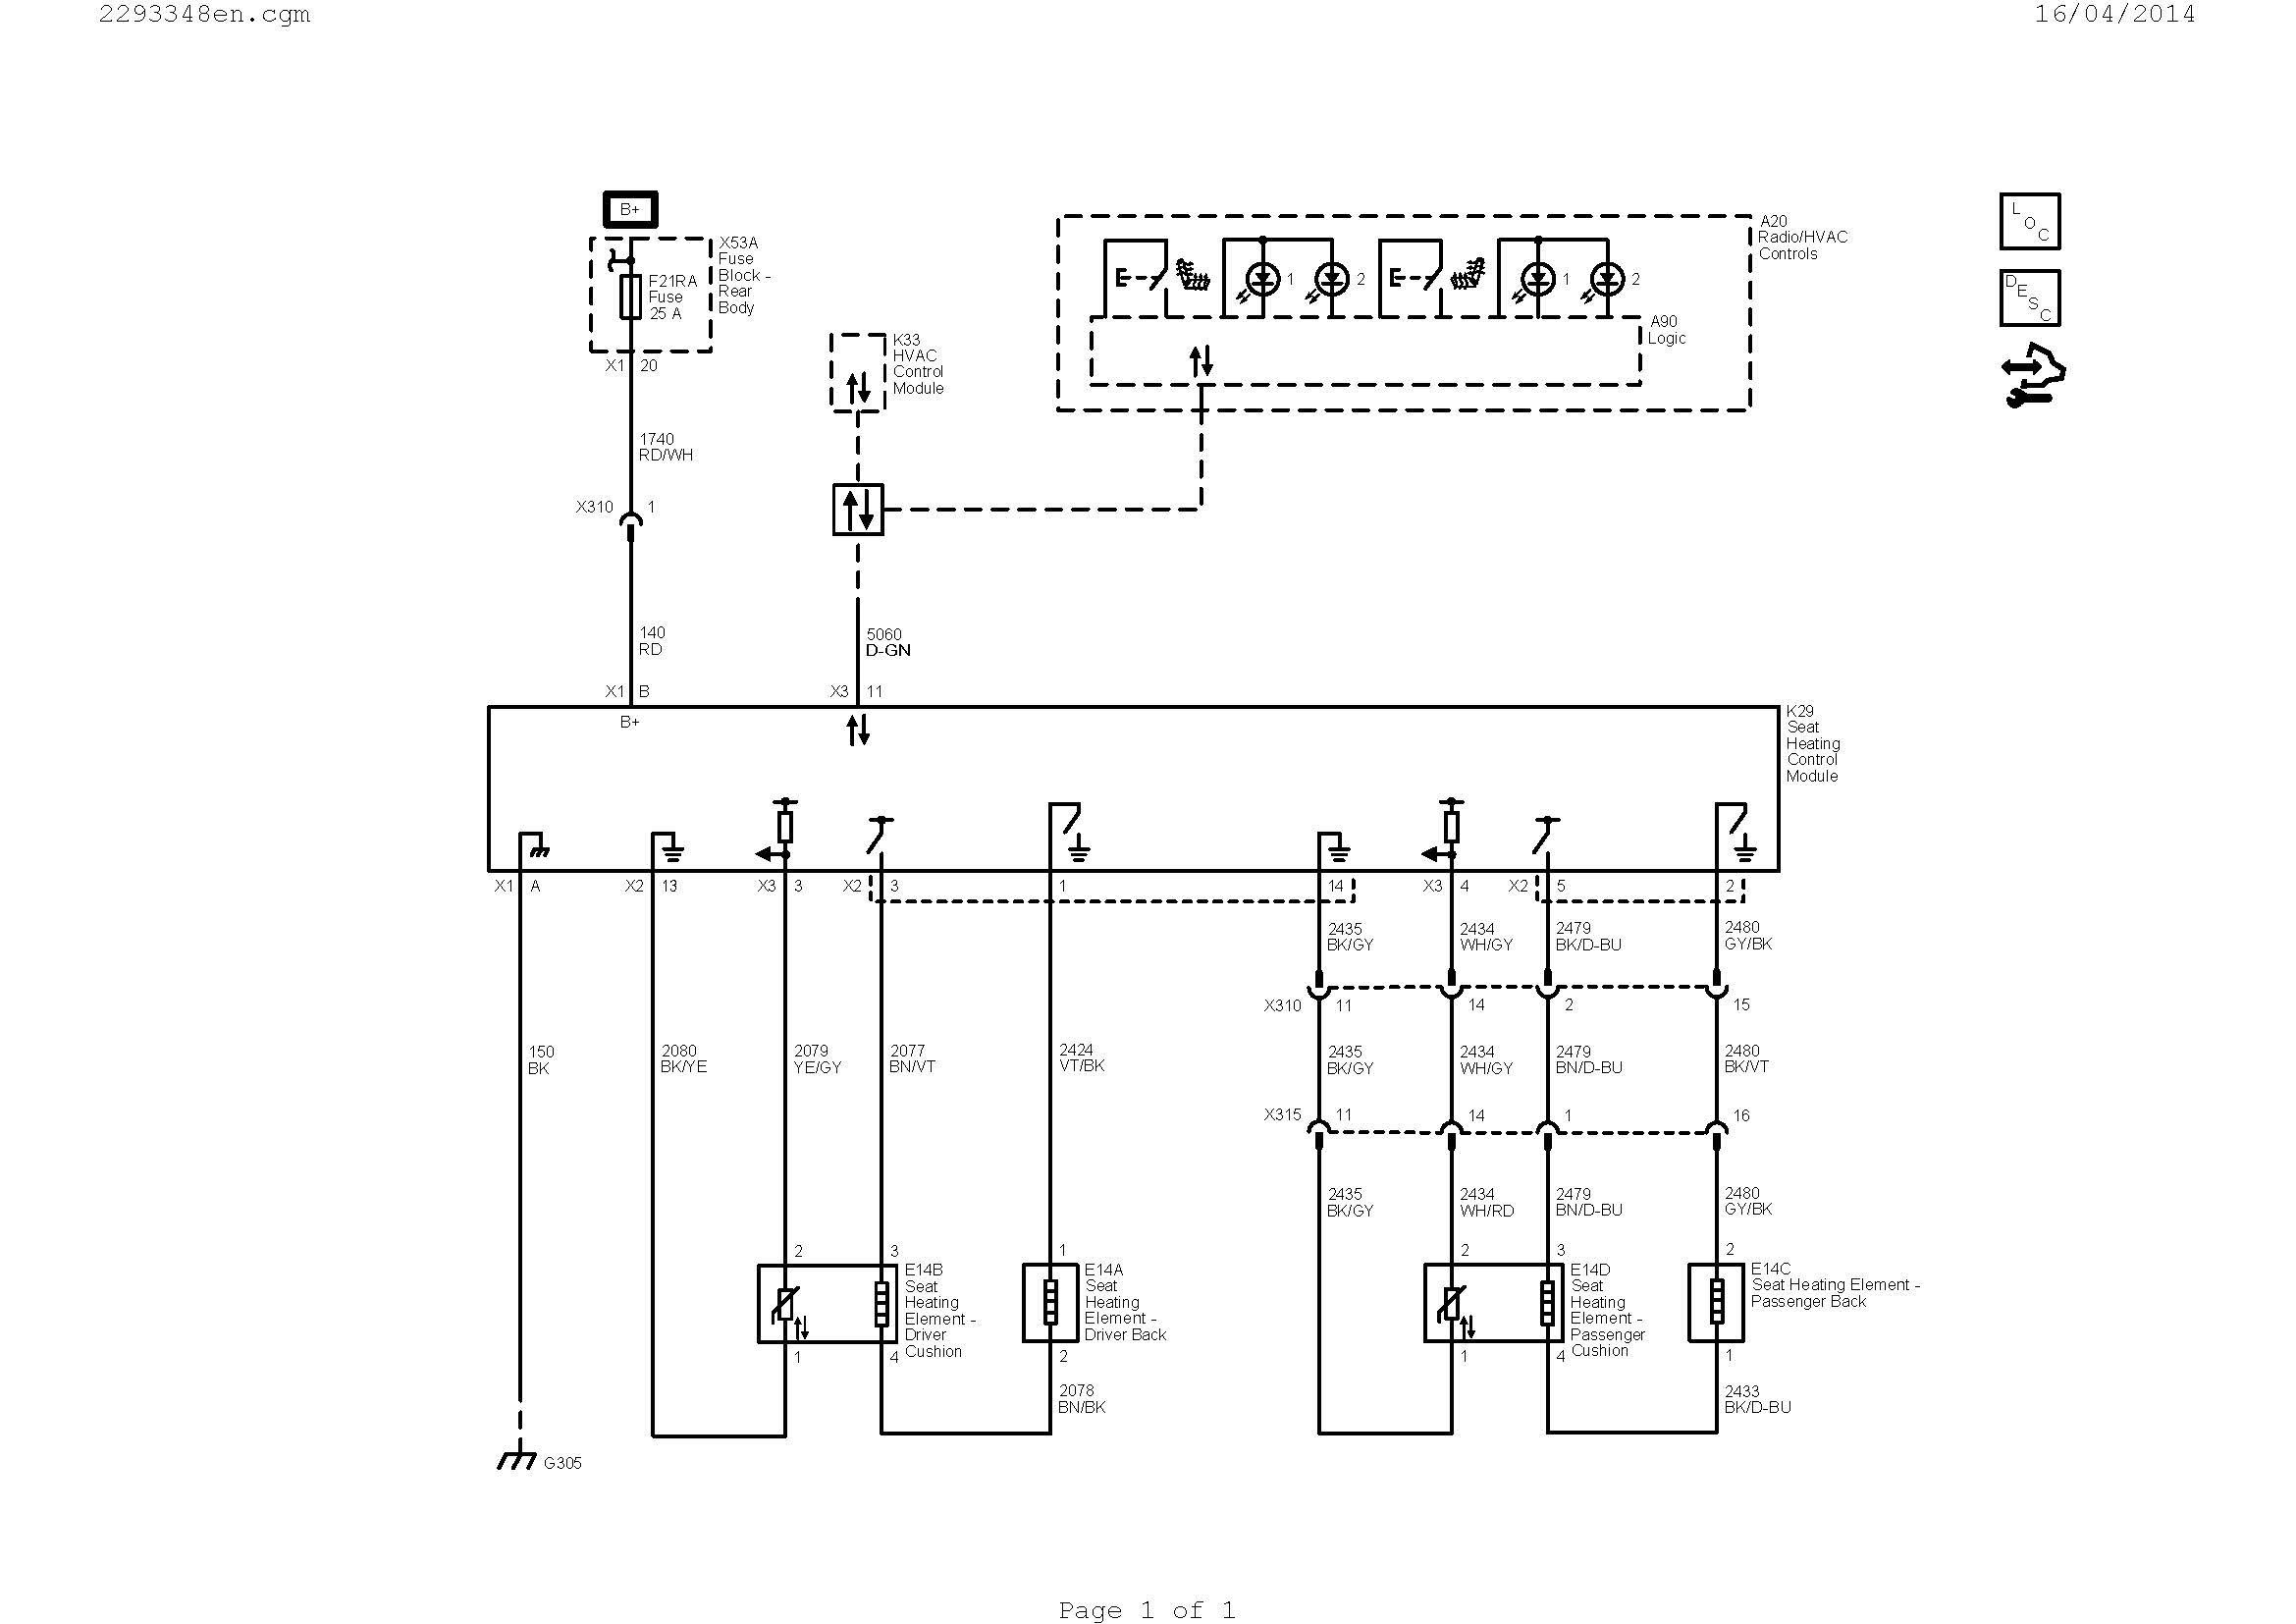 kohler engine wiring diagram Download-Wiring Diagram for Kohler Engine Valid Mechanical Engineering Diagrams Hvac Diagram Best Hvac Diagram 0d 13-s